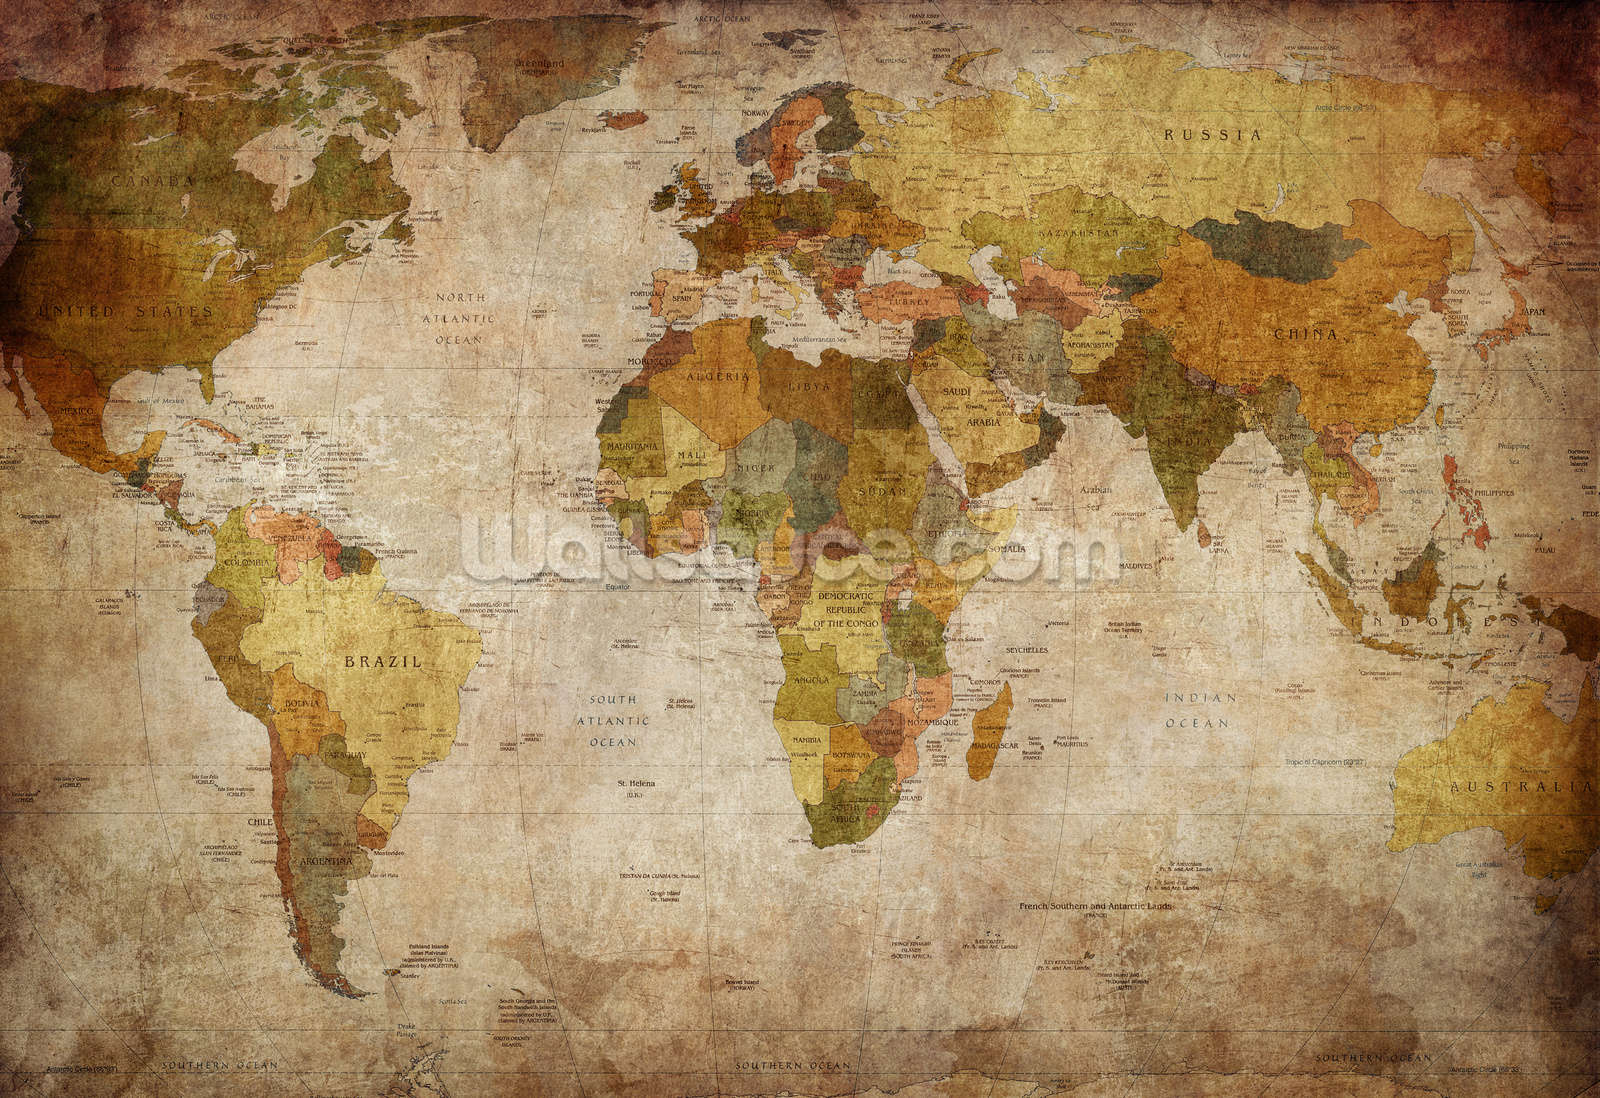 World Map Wall Paper old style world map wallpaper wall mural | wallsauce usa